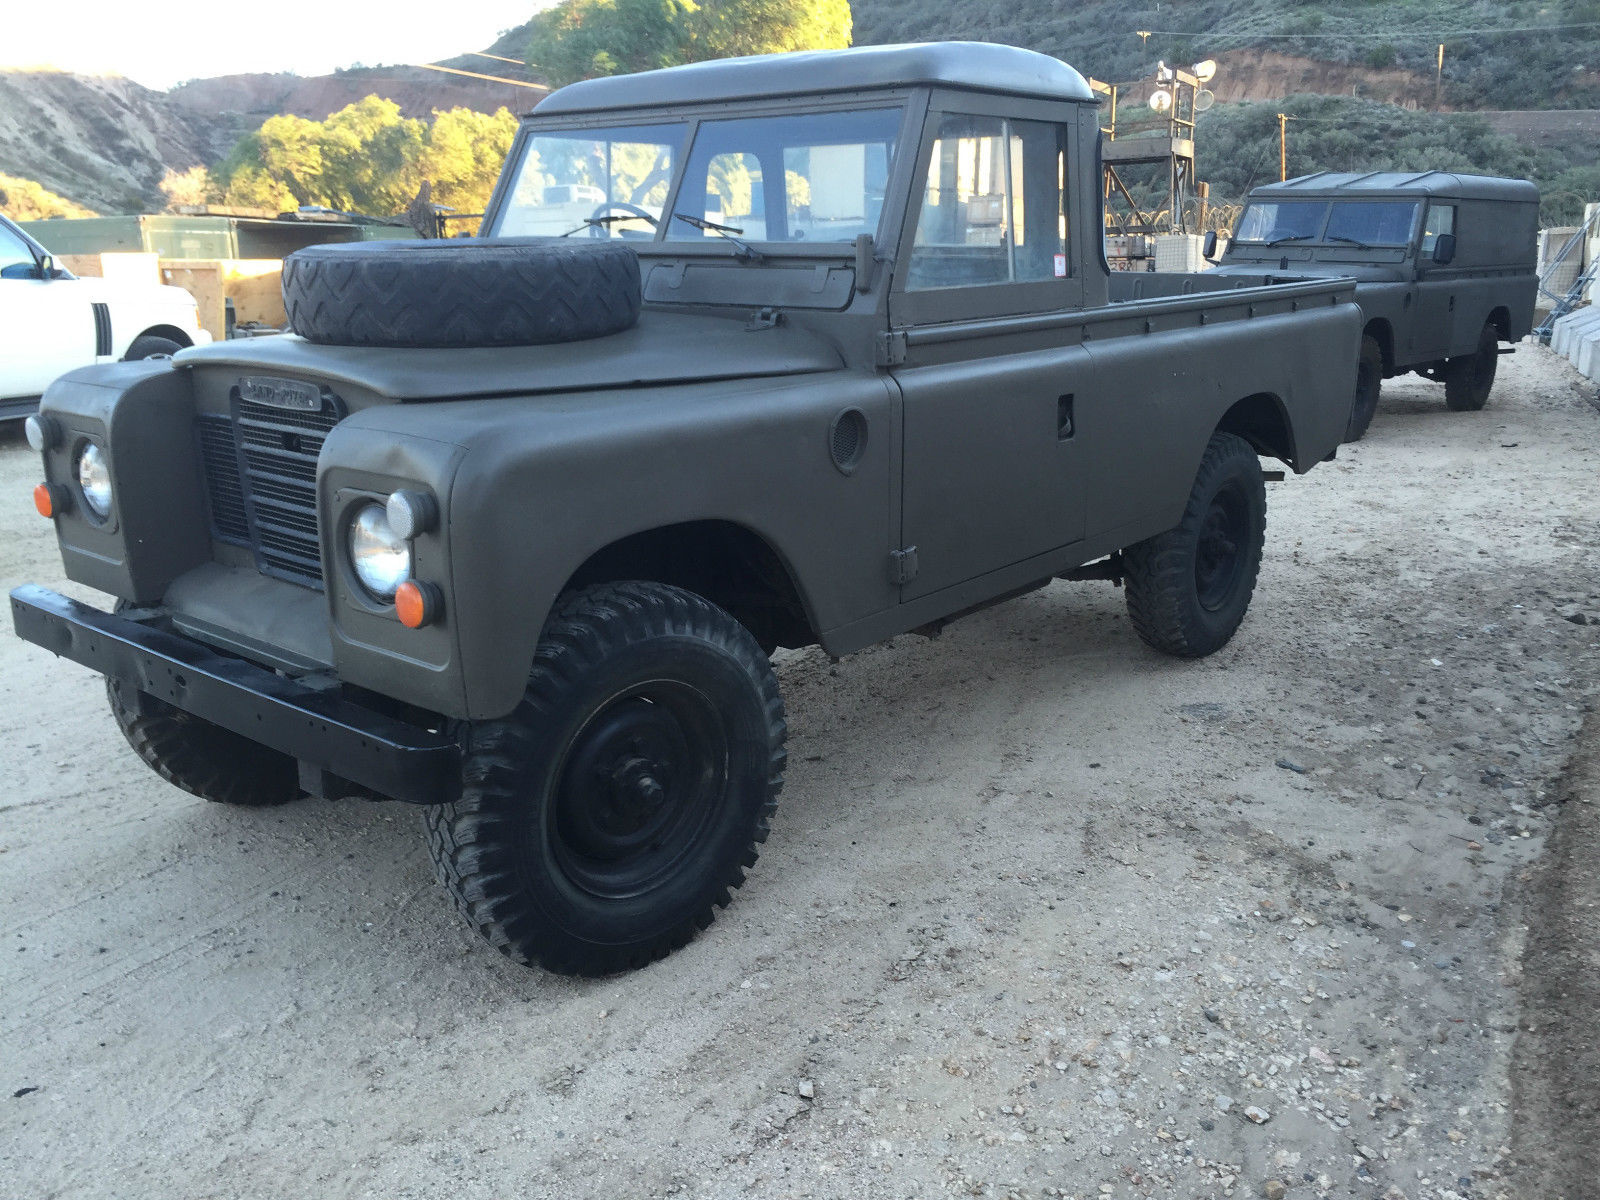 1973 land rover 109 pick up truck rare for sale in santa clarita california united states. Black Bedroom Furniture Sets. Home Design Ideas